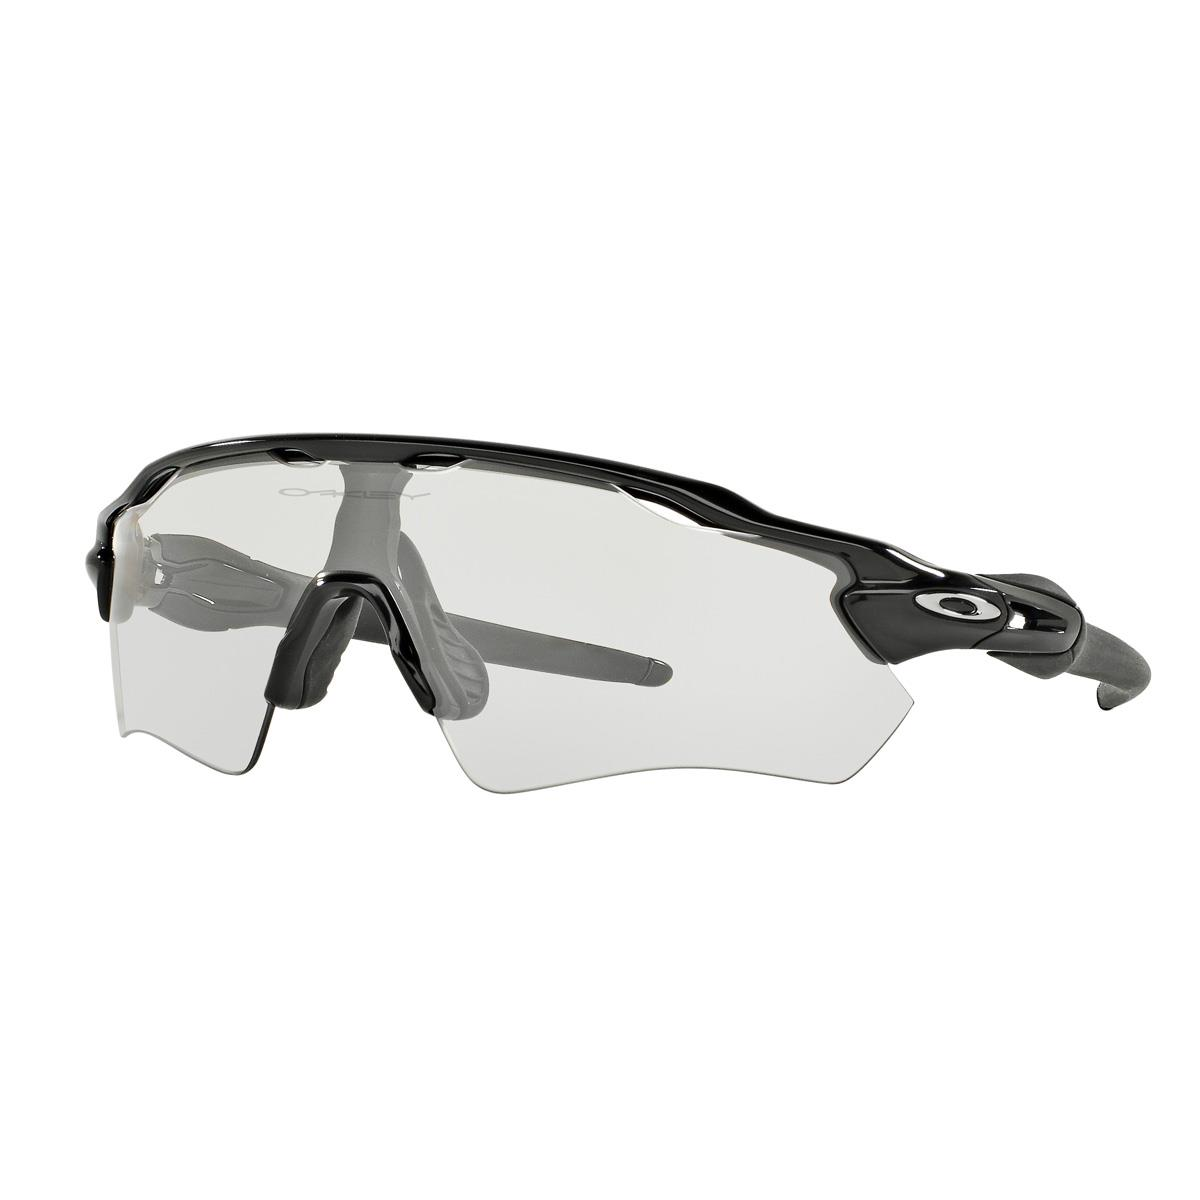 08efe247a5610 Óculos Oakley Radar Ev Path Photochromic 2F - FastRunner